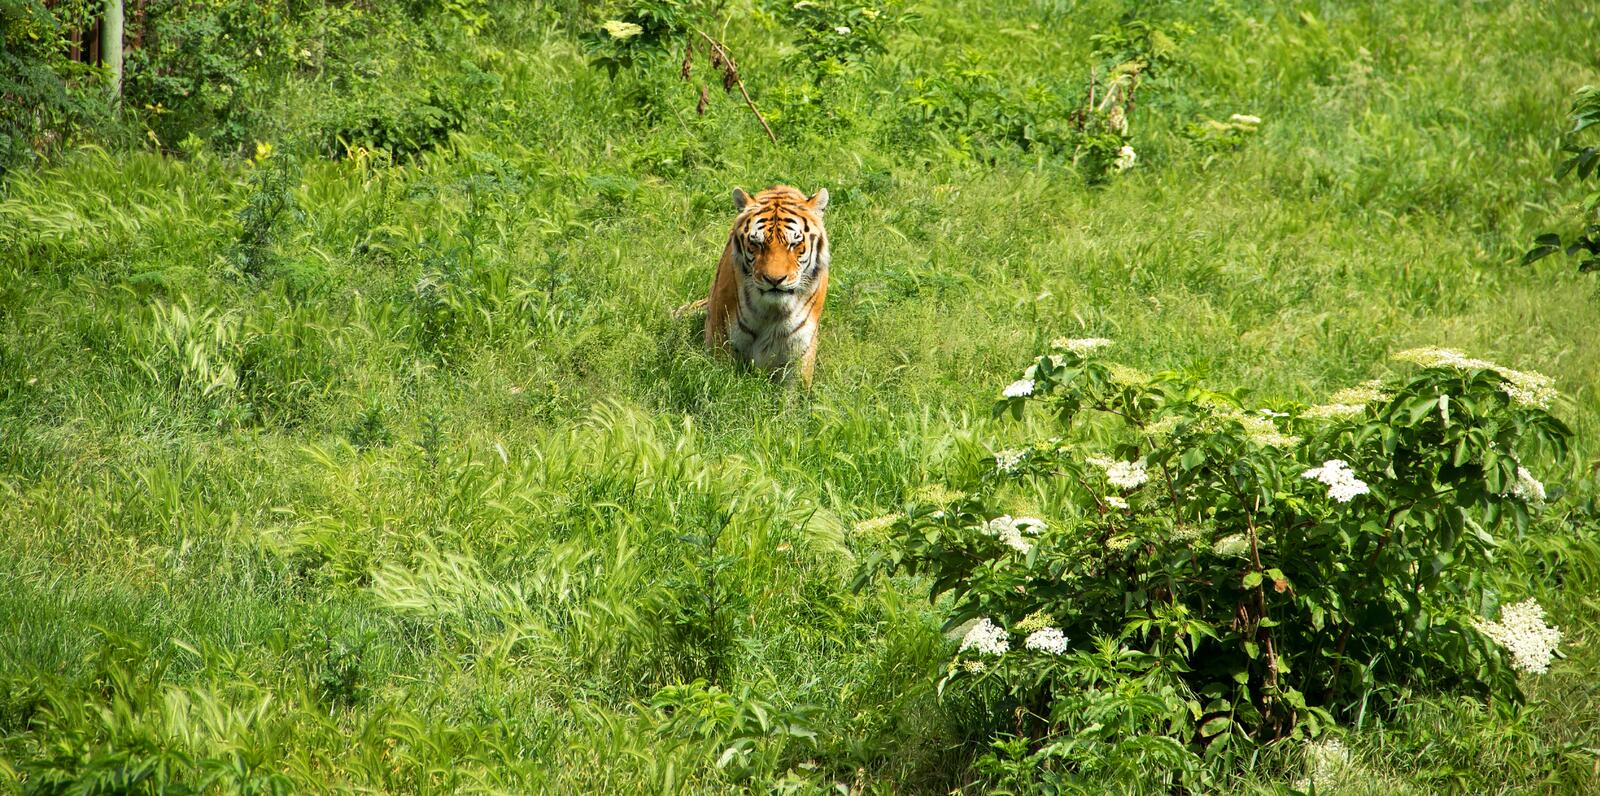 Tiger on Green Field. Tiger is Sitting in Grass Field royalty free stock image